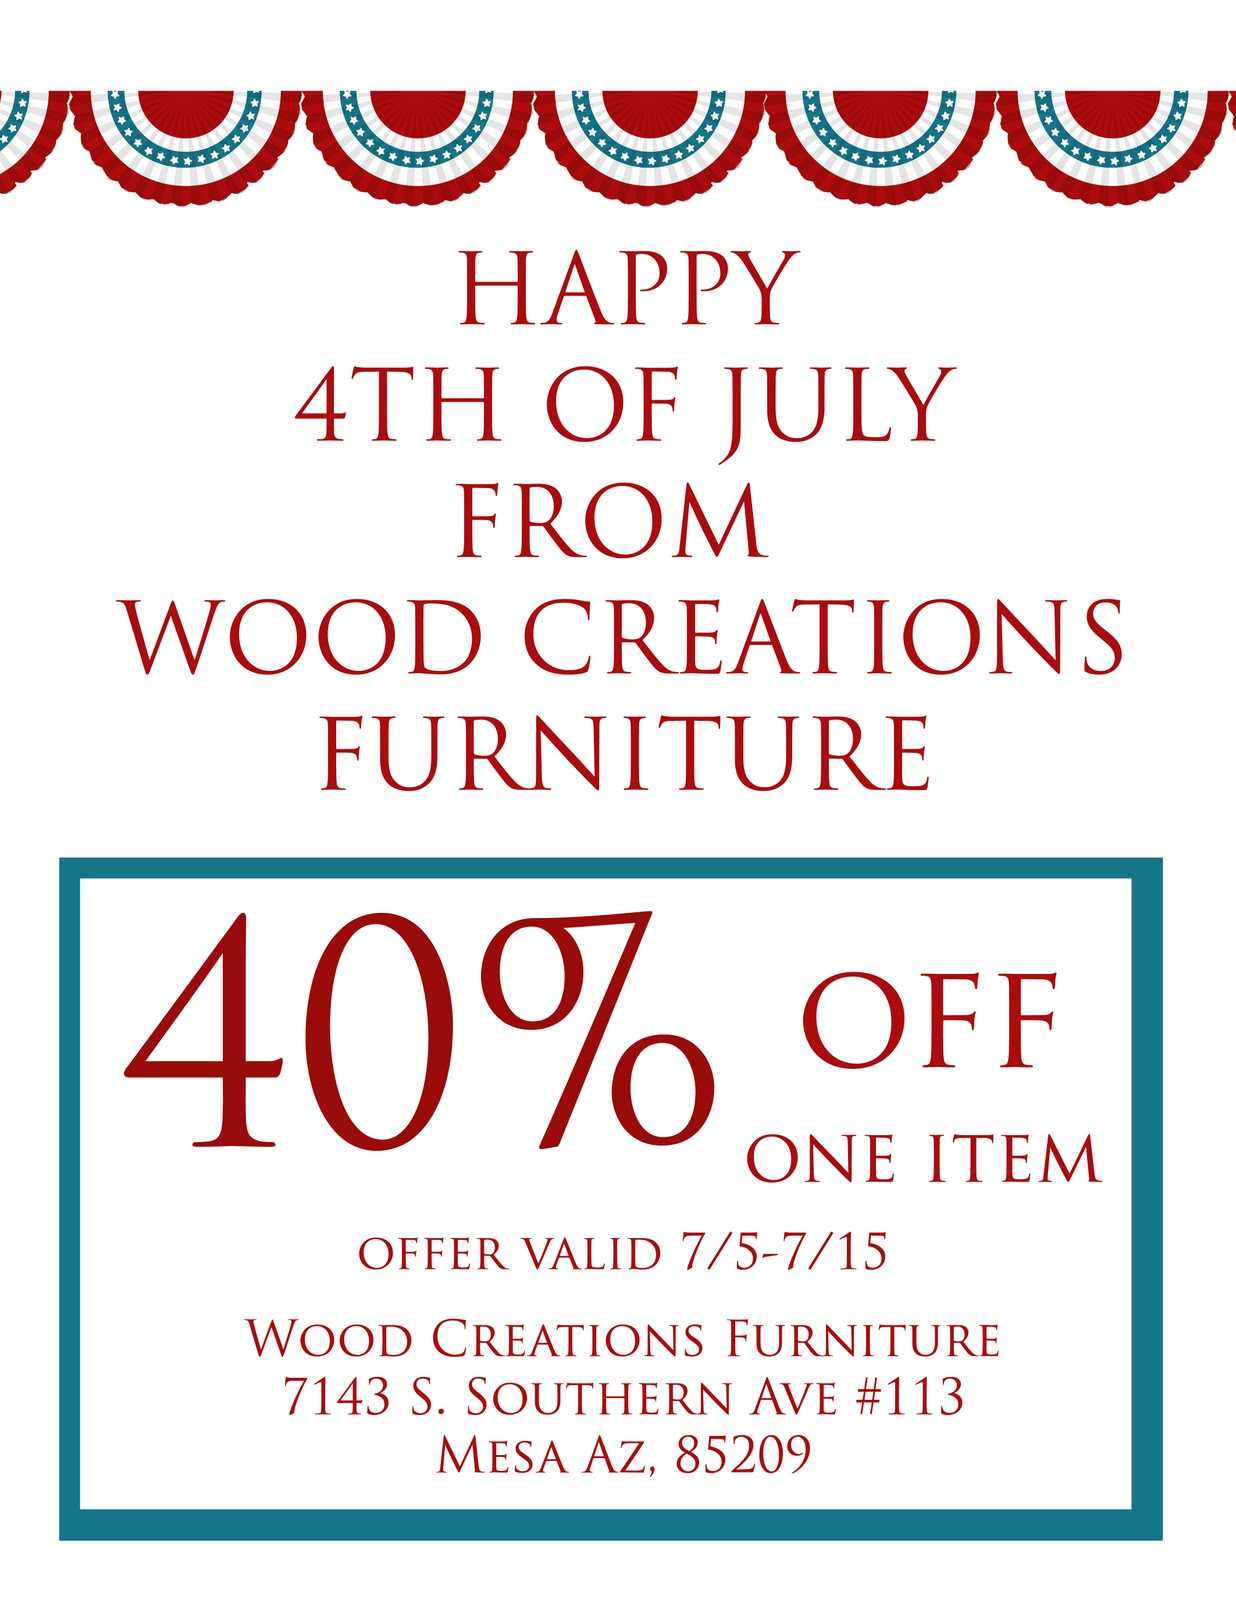 Wood Creations Furniture: July 2011